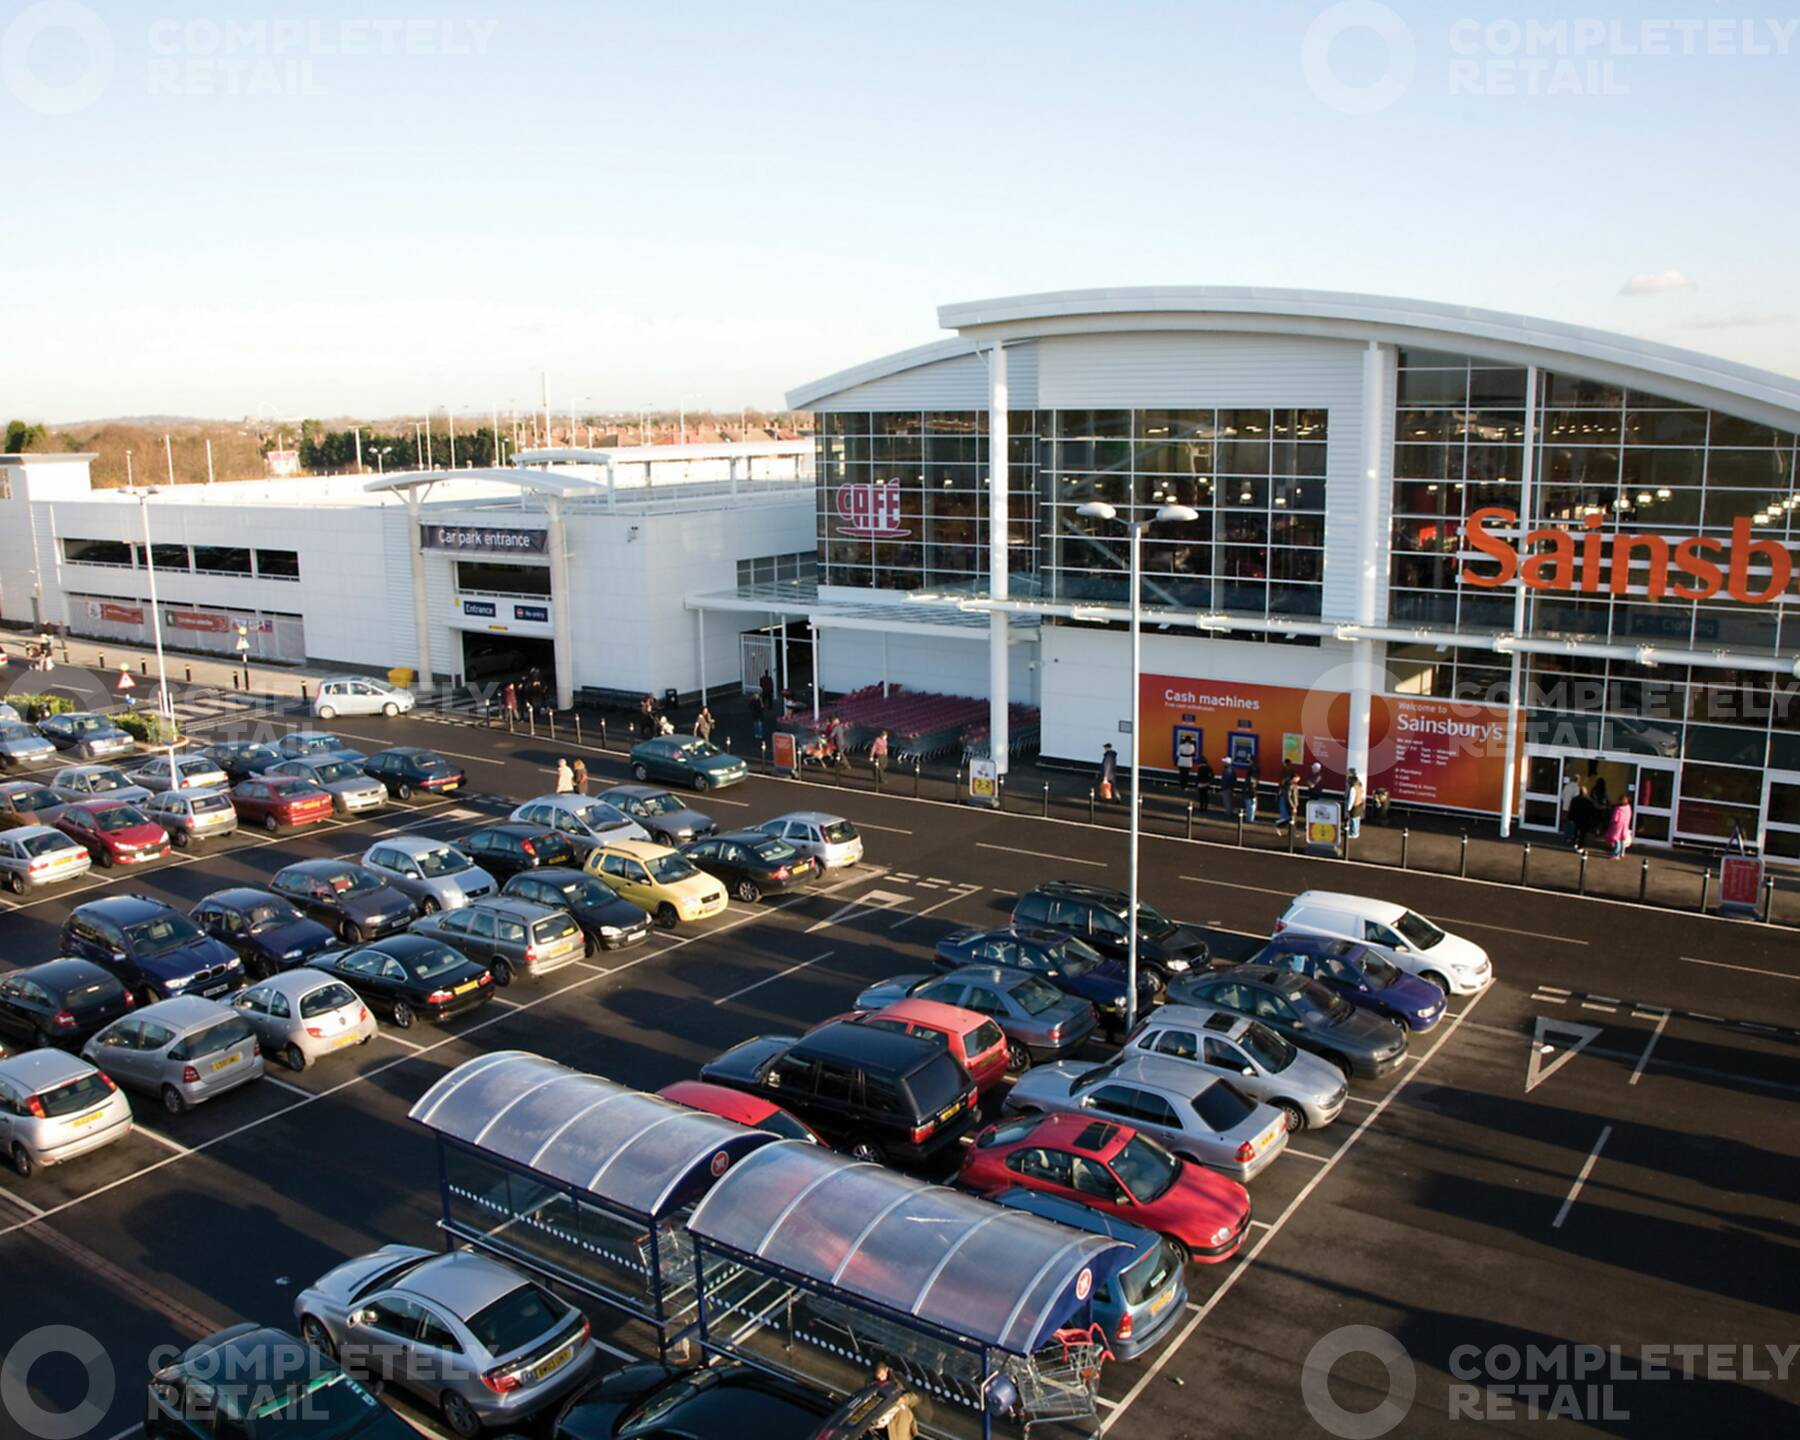 Lombardy Shopping Park